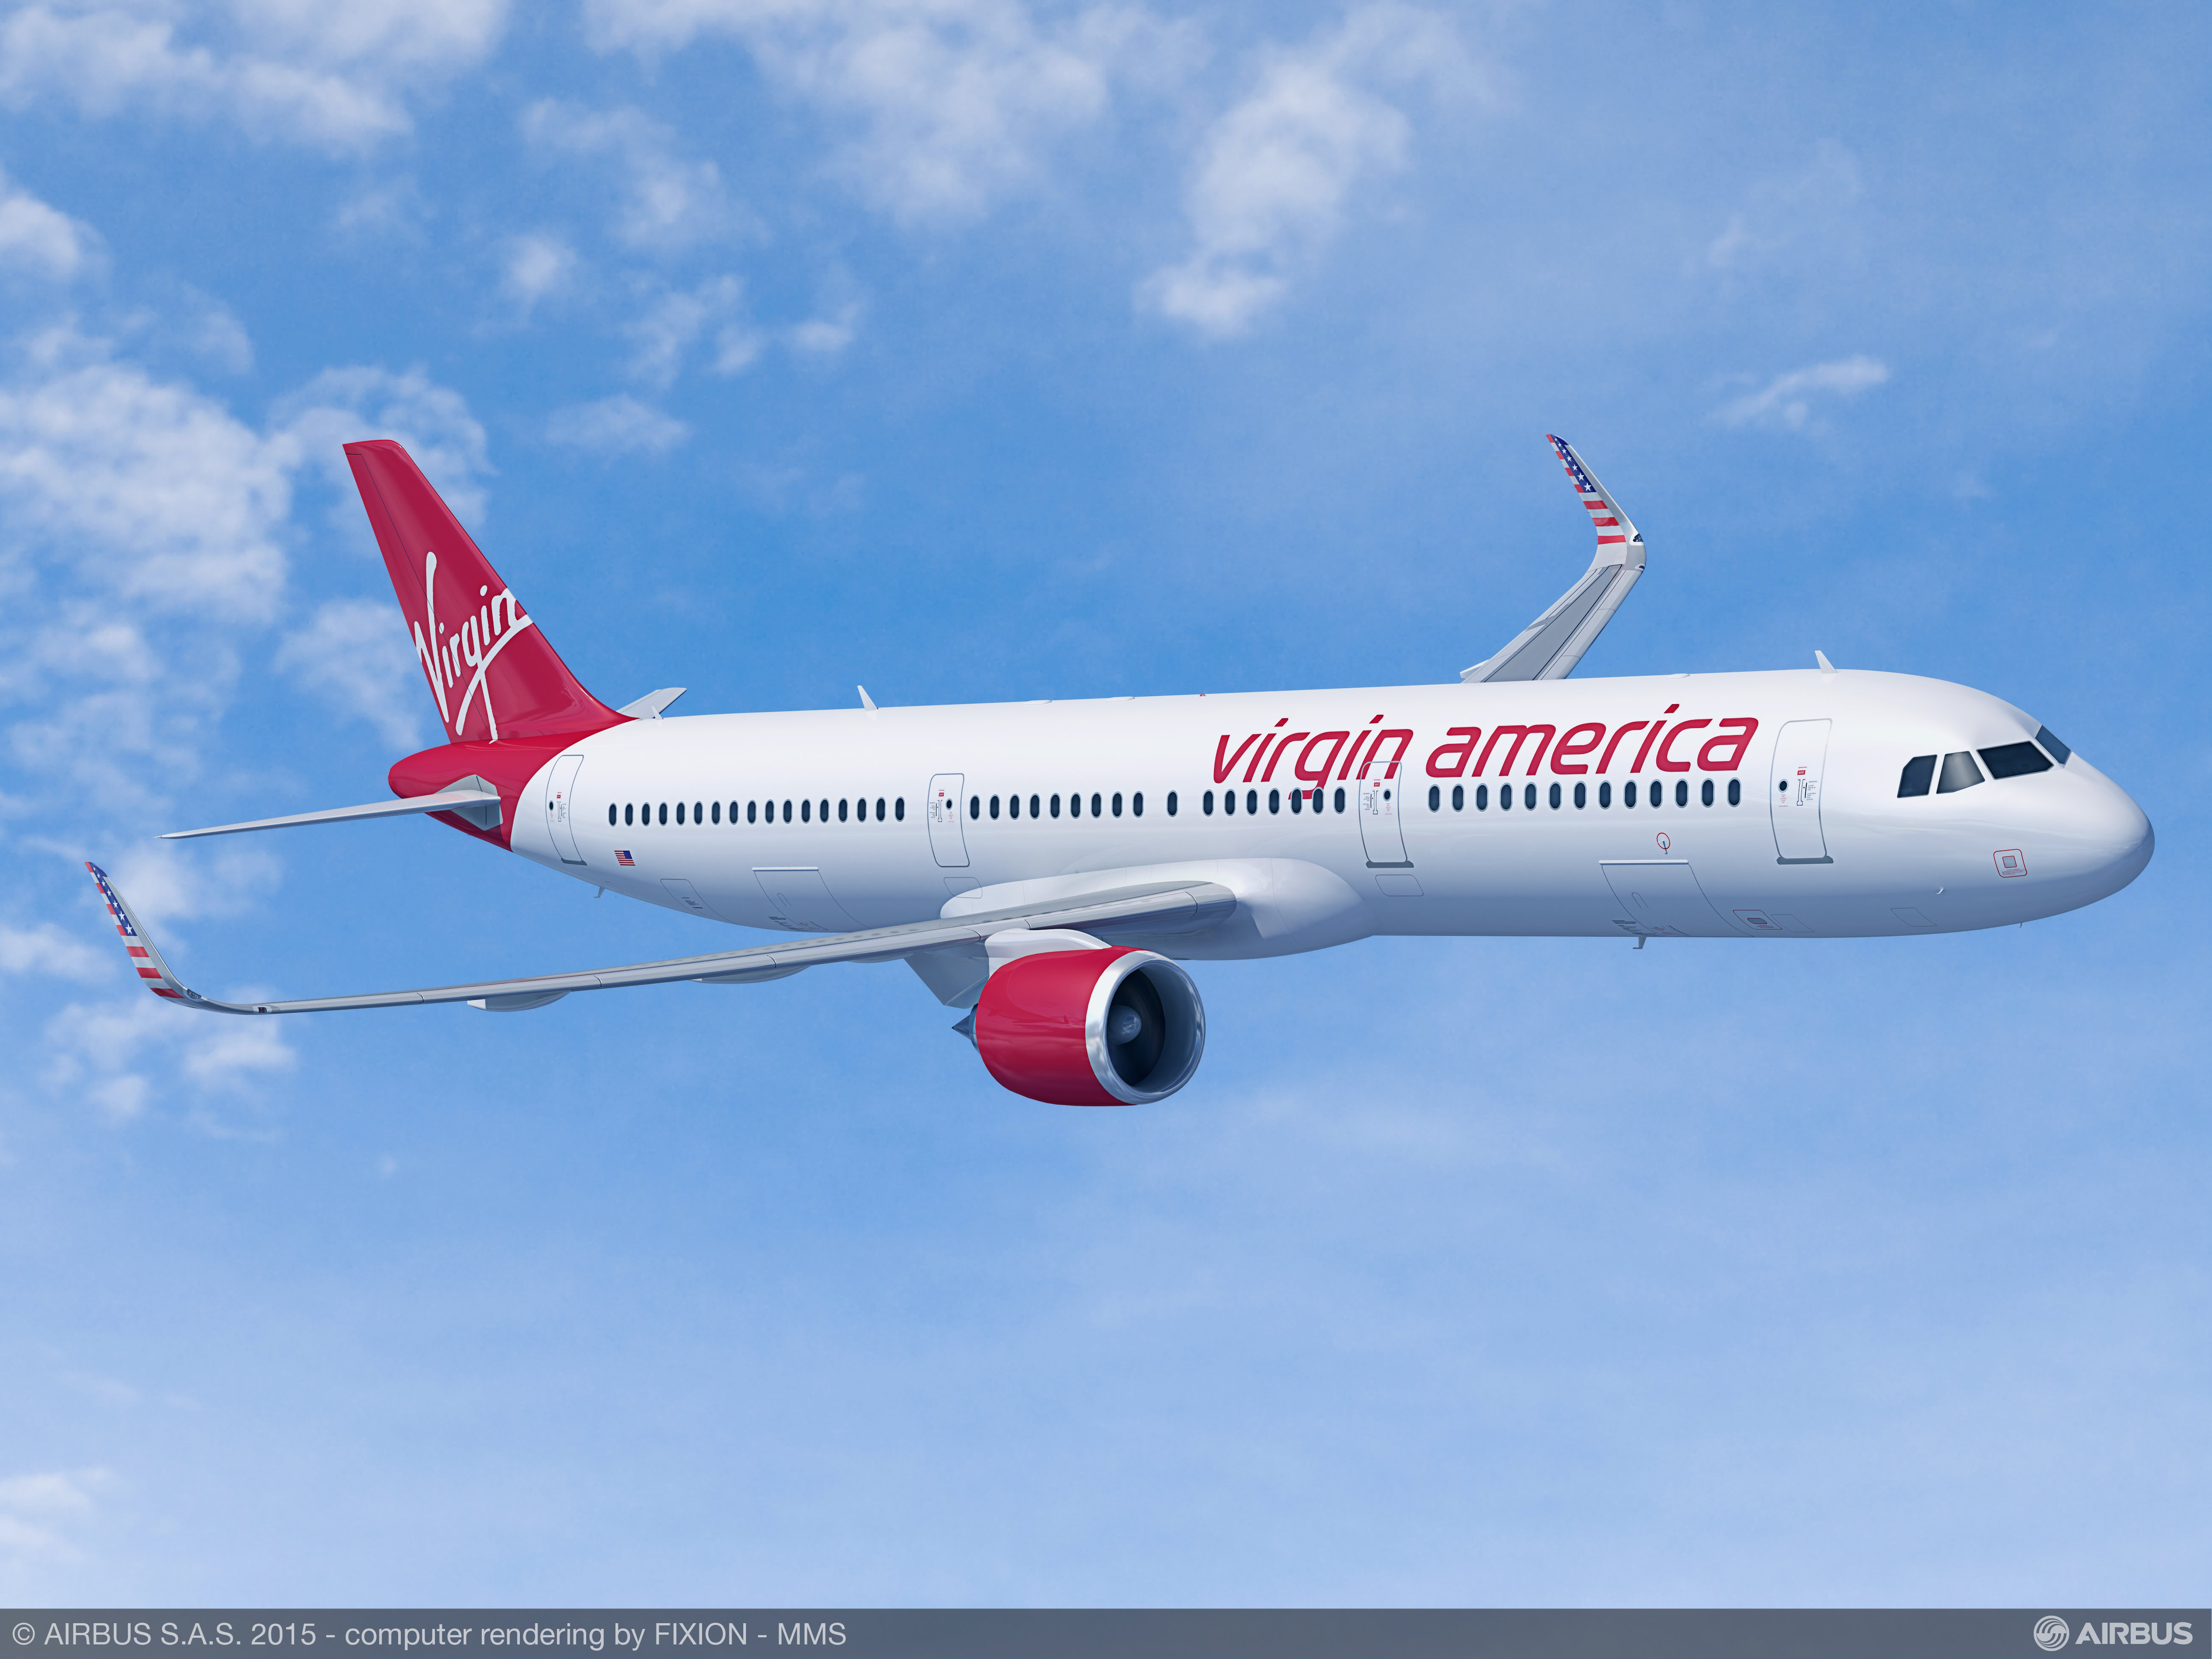 Virgin america 39 s a321neo first pics and more travelupdate for Virgin america a321neo cabin